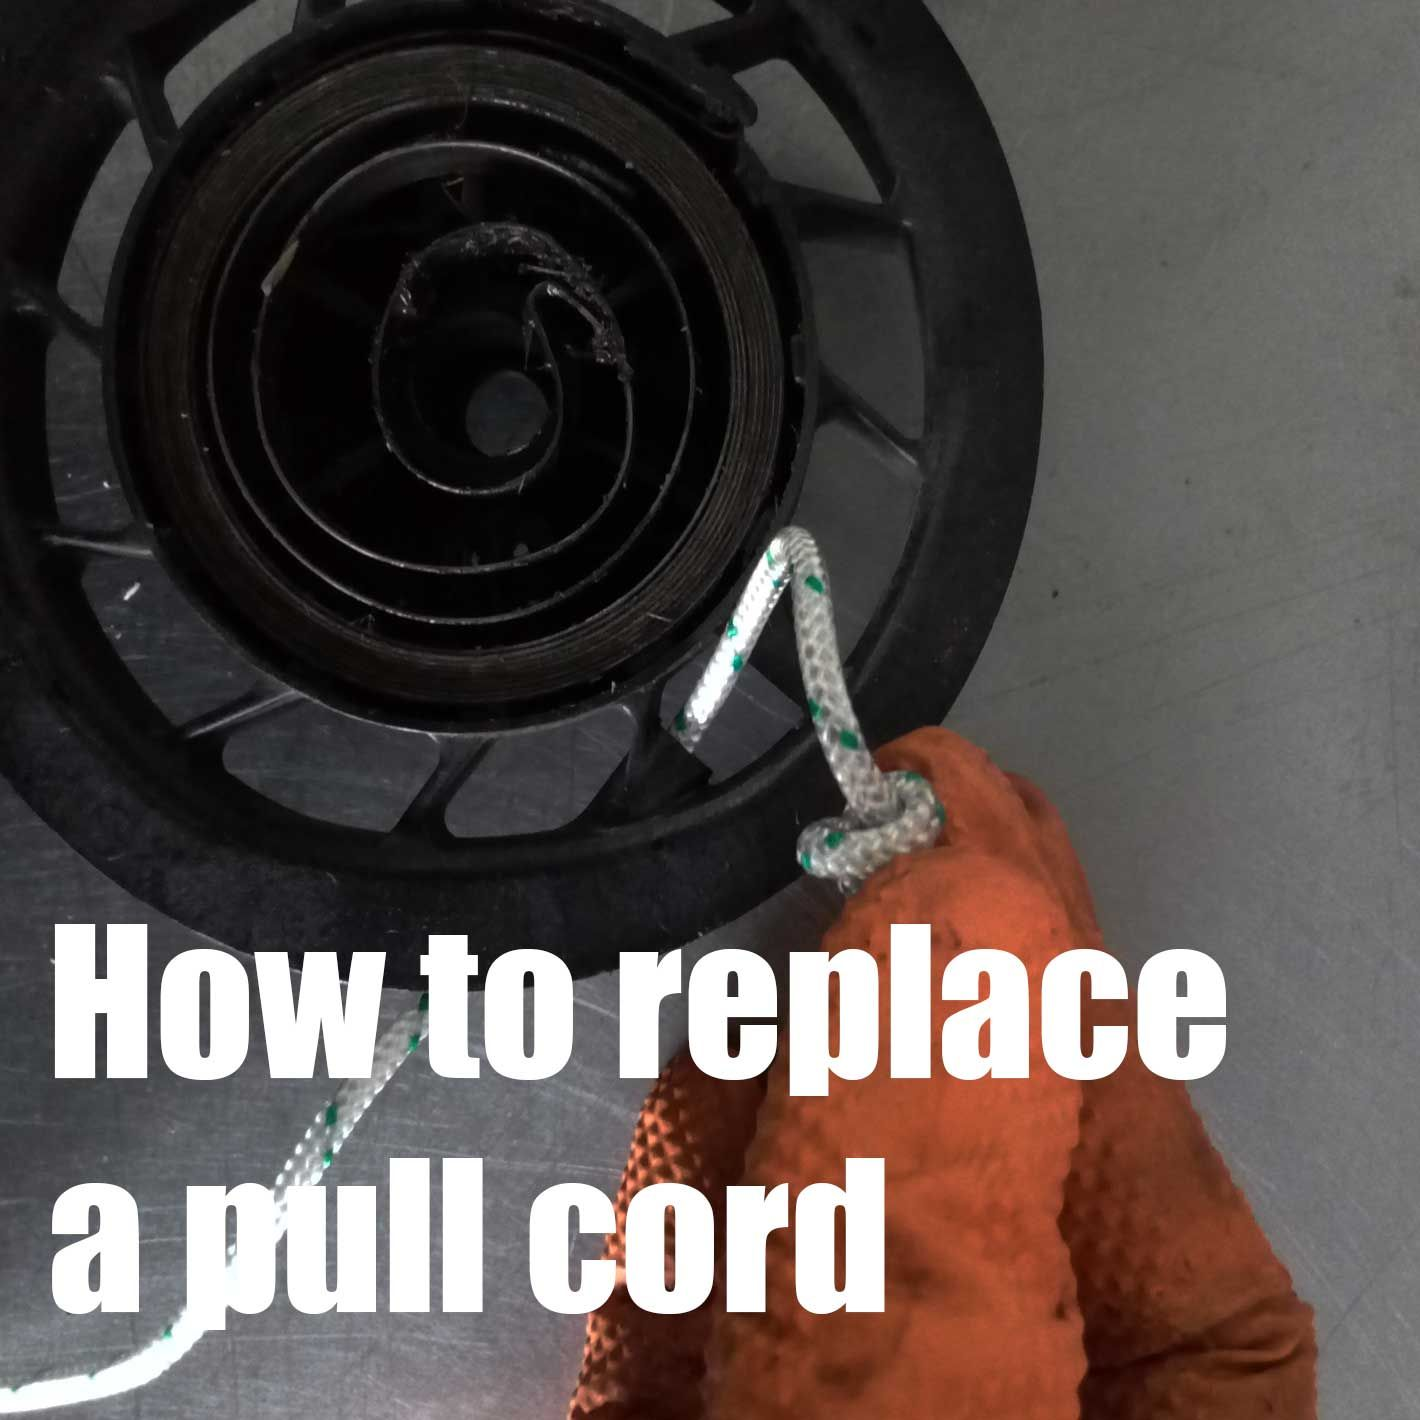 How To Replace Lawnmower Pull Cord Simple Guide With Pictures Lawn Mower Lawn Mower Maintenance Lawn Mower Repair